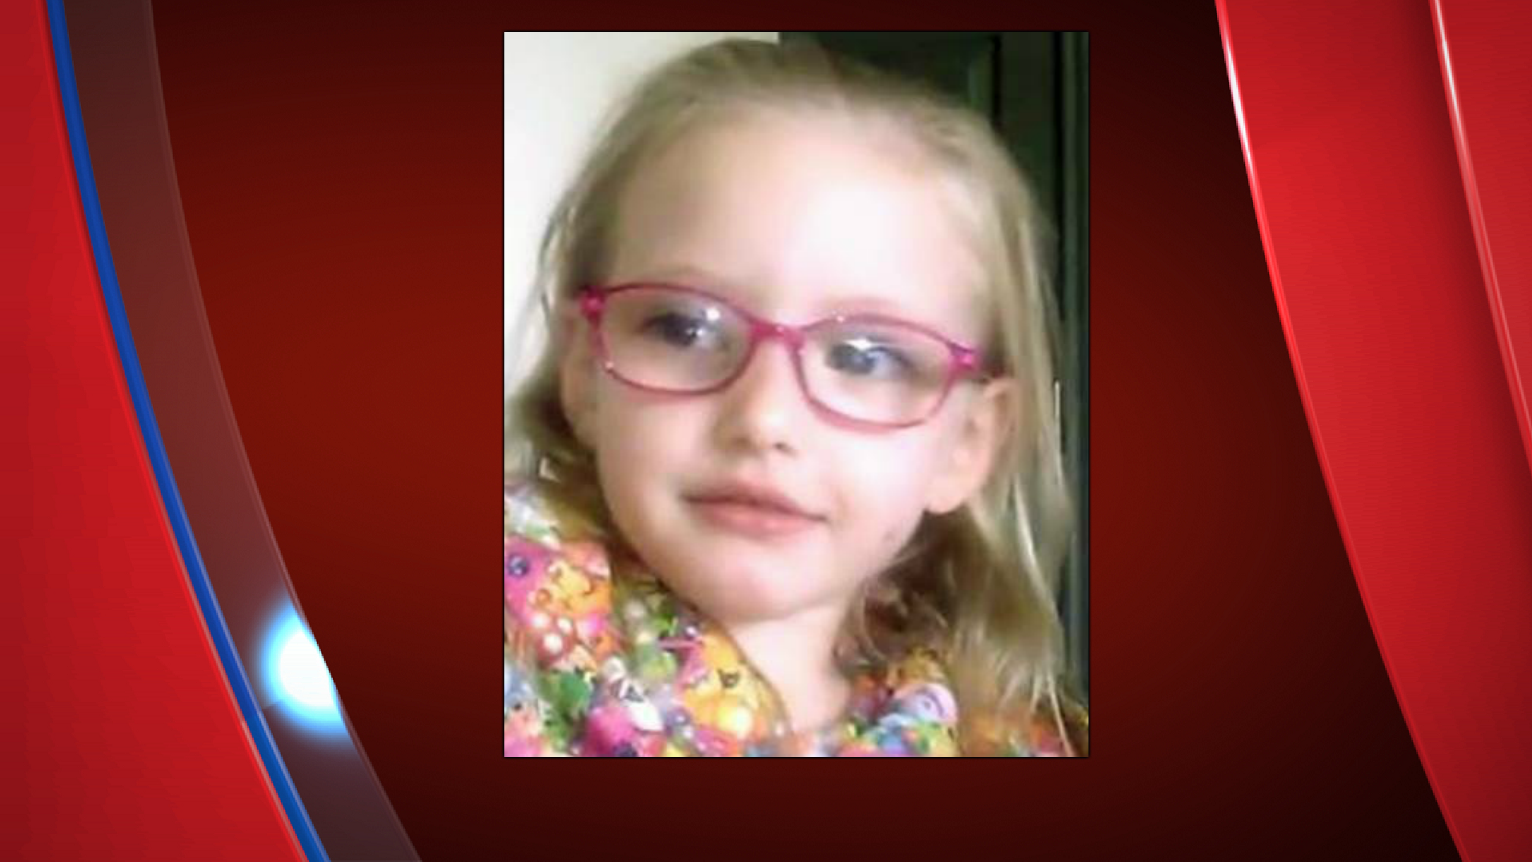 Izabella Corsaut, 5, was last seen July 3 in Elgin, Oklahoma. (Courtesy of the Chickasha Police Department)